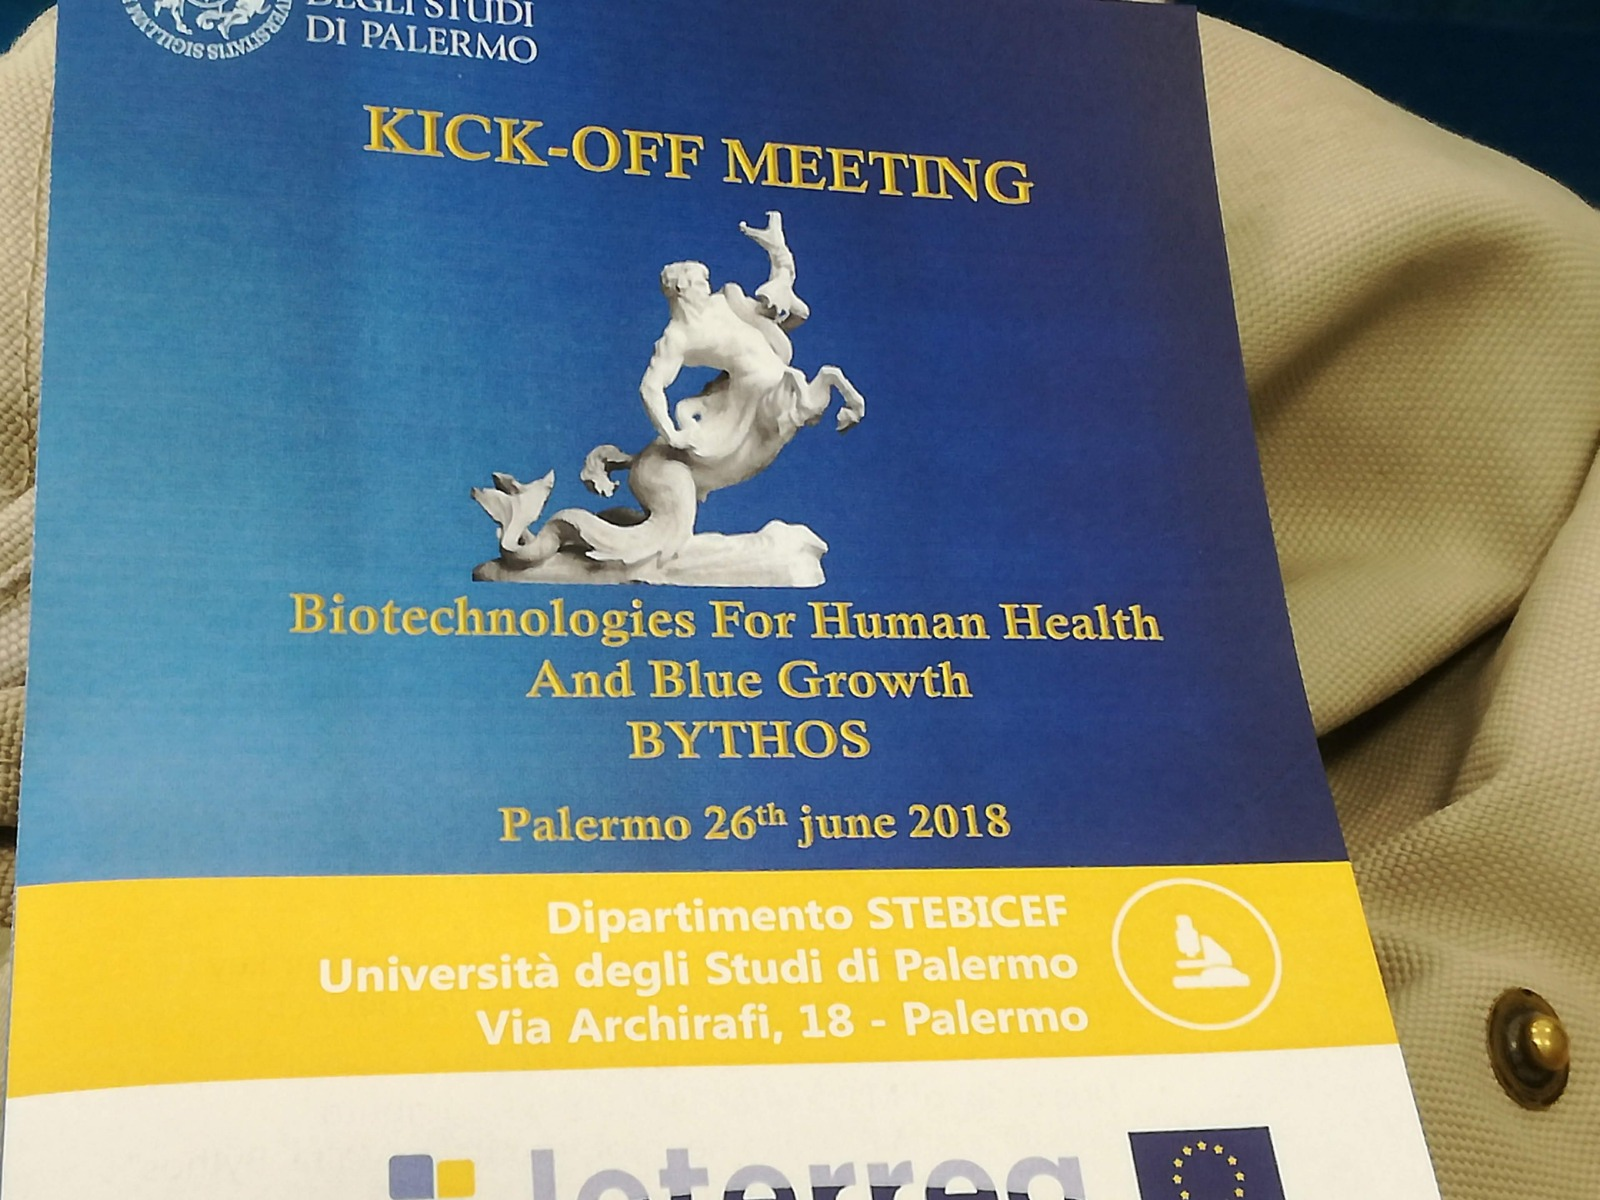 Bythos - Kick-off meeting, Palermo